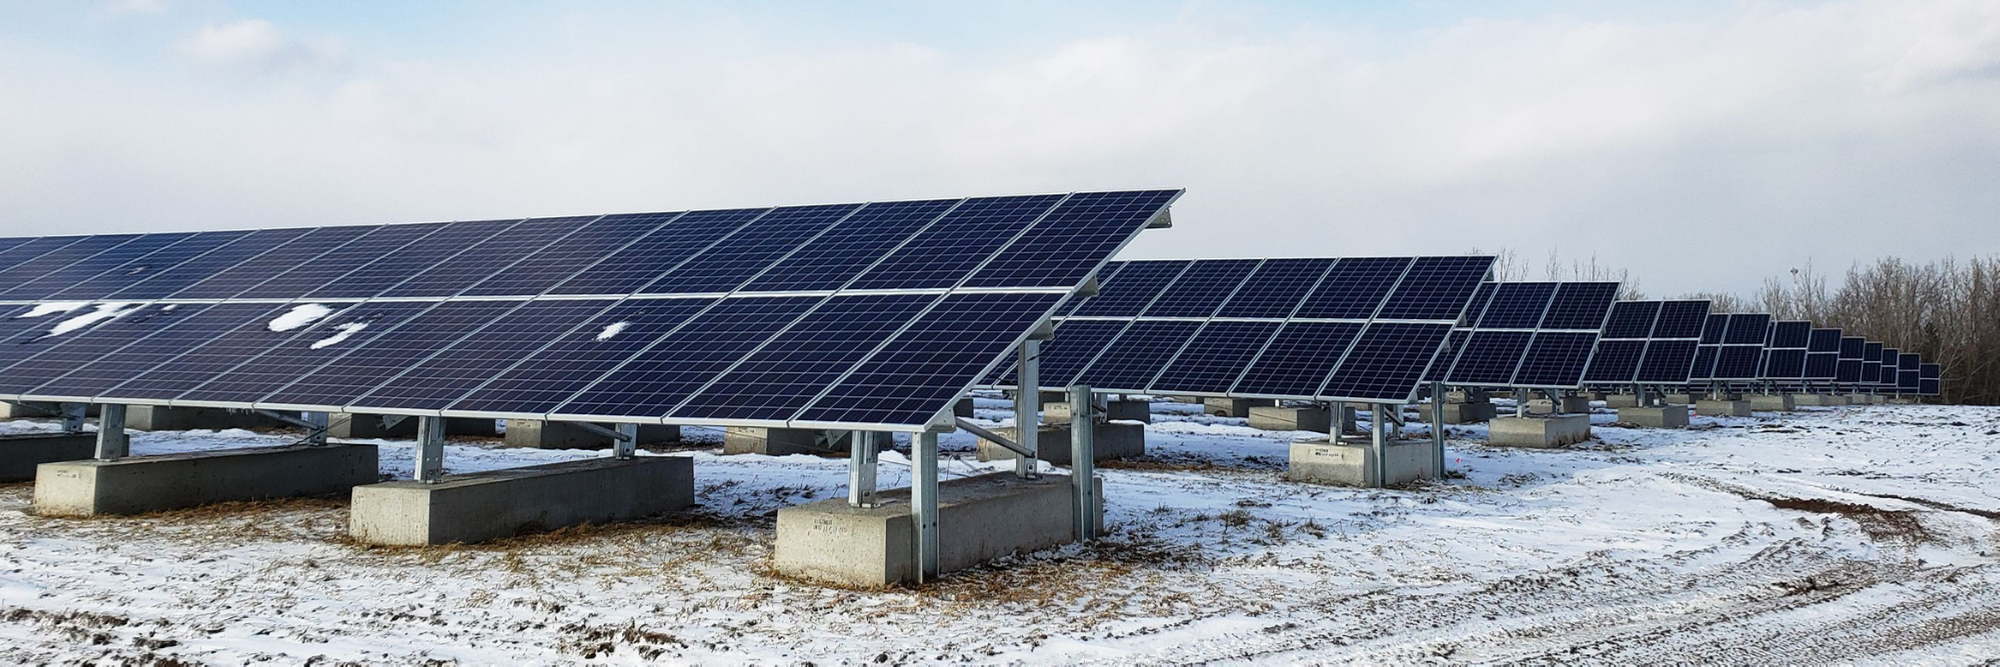 $0 Down Financing Opportunity Makes Solar Accessible for All Businesses